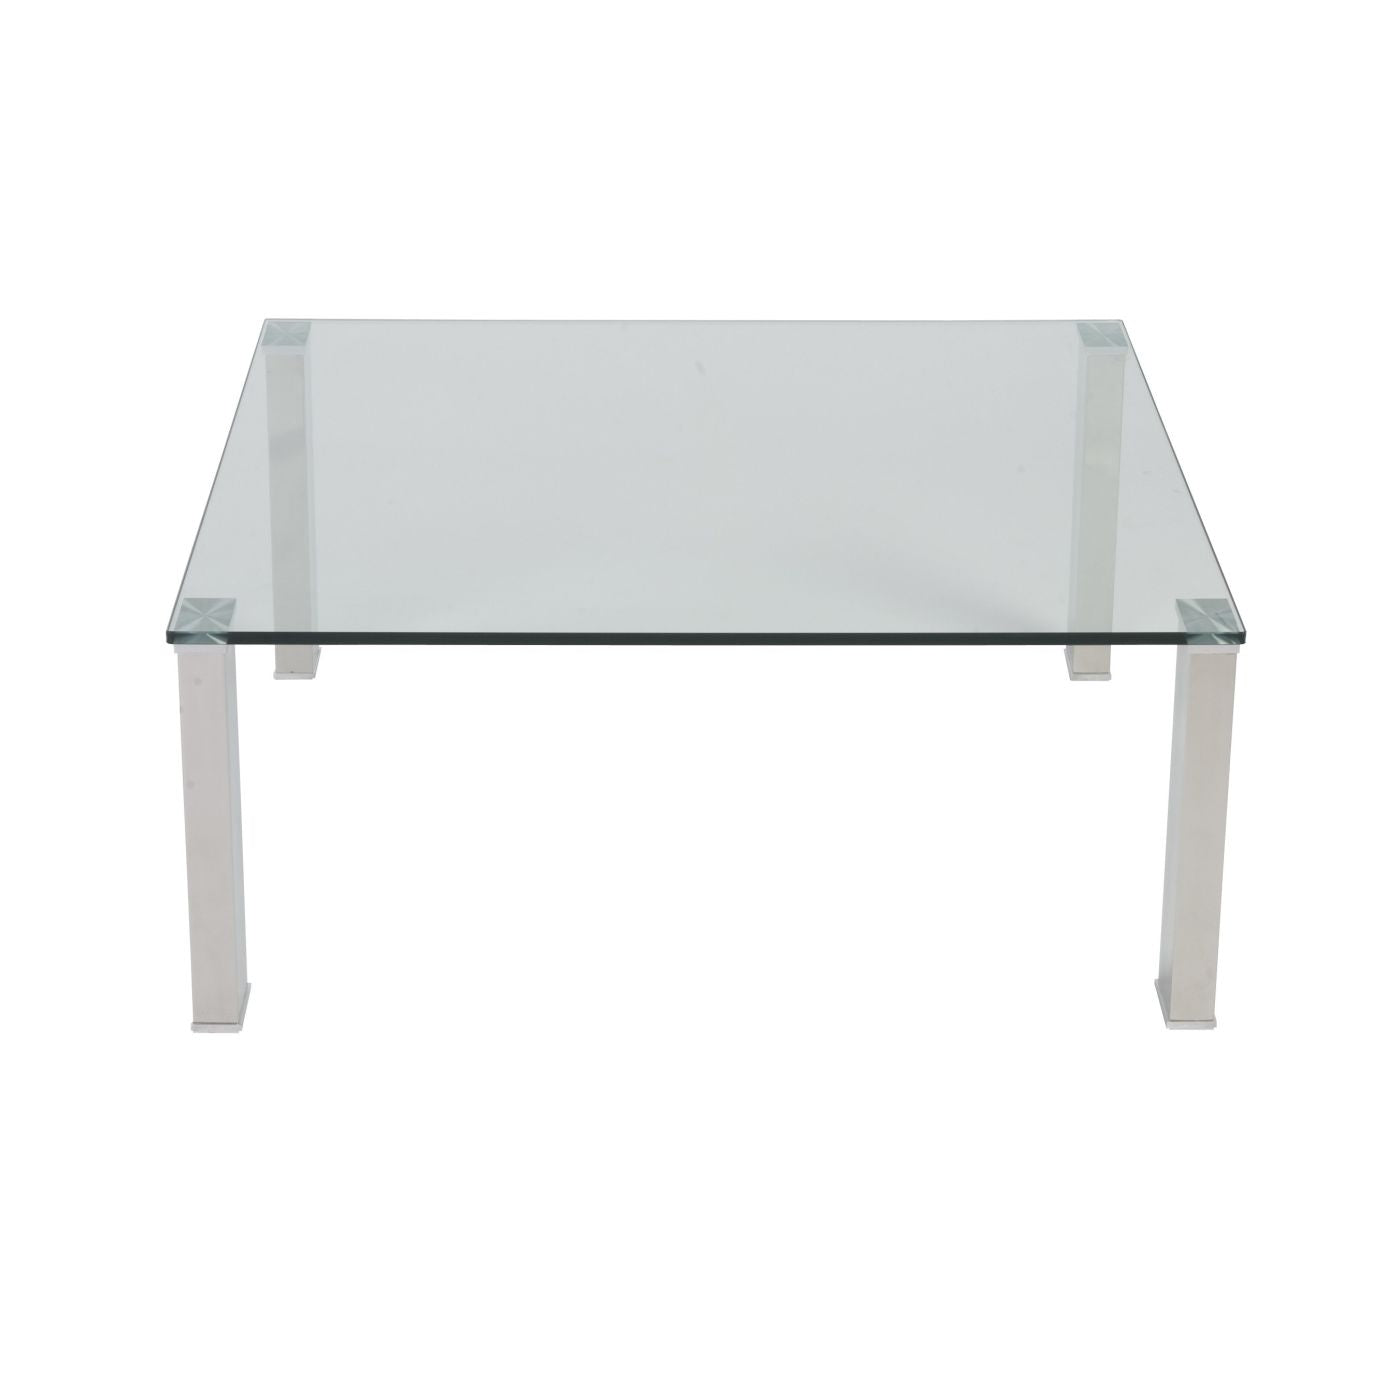 Square Glass And Steel Coffee Table: Buy Euro Style EURO-38702-KIT Beth Square Coffee Table